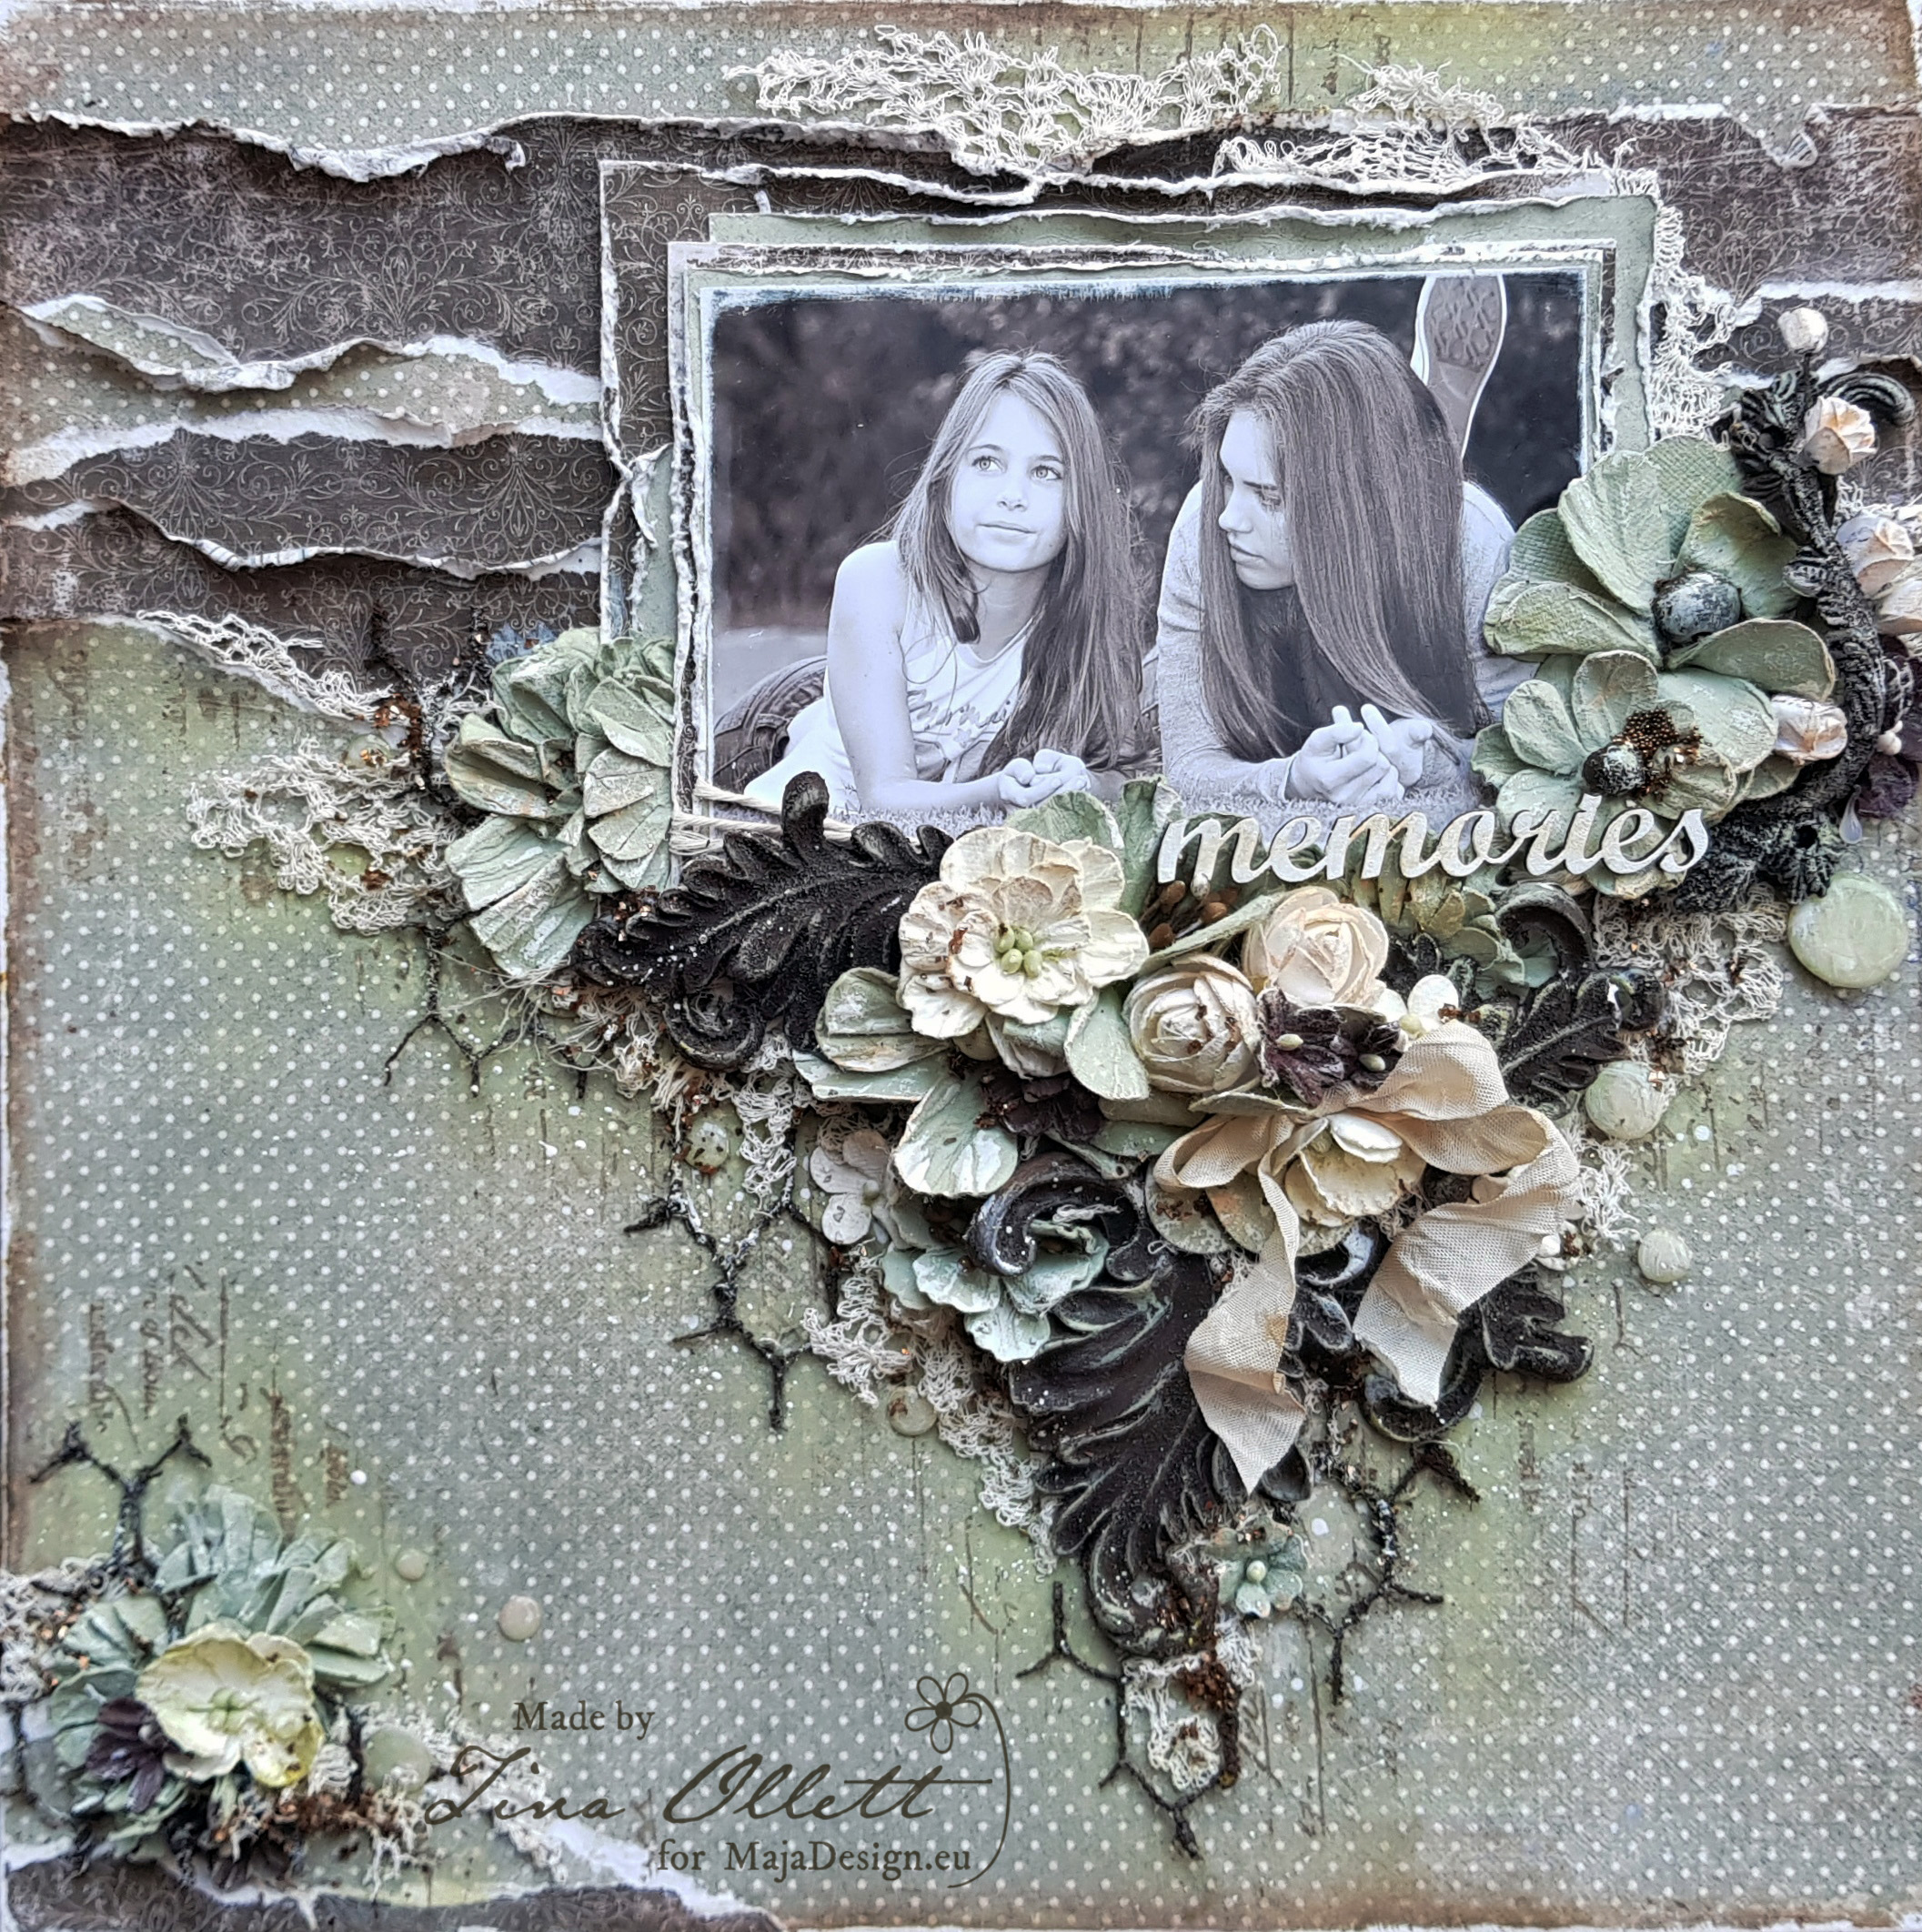 """Memories"" Maja Design Moodboard Inspiration Creation"